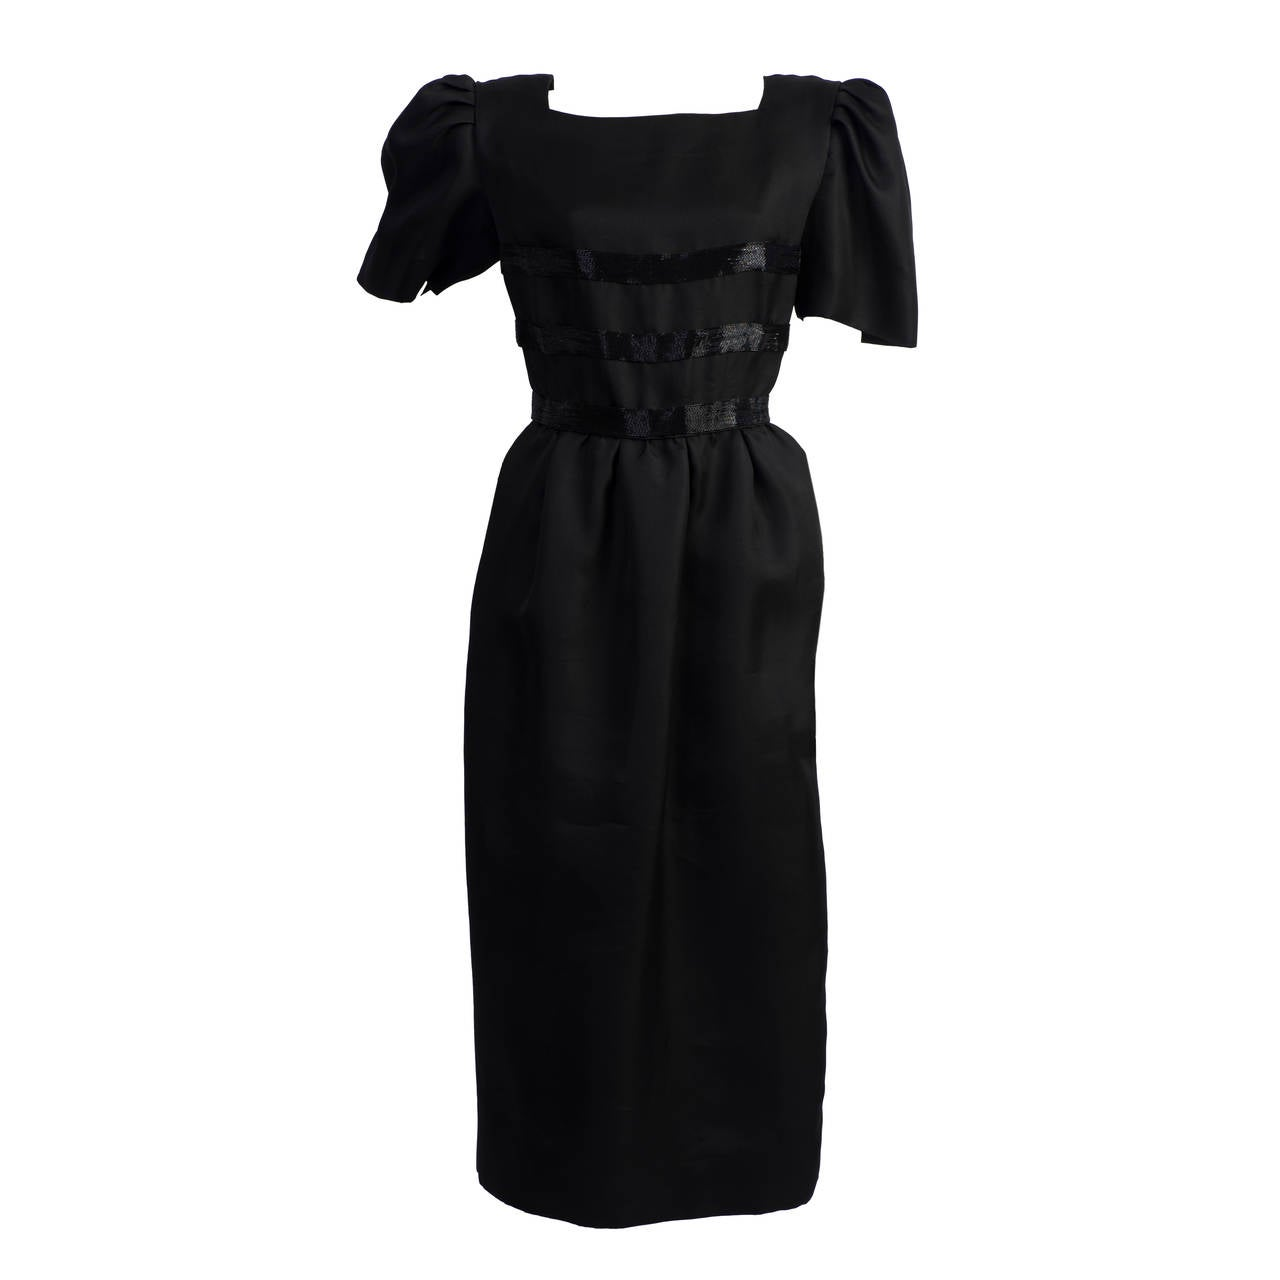 1980s Renato Balestra Black dress